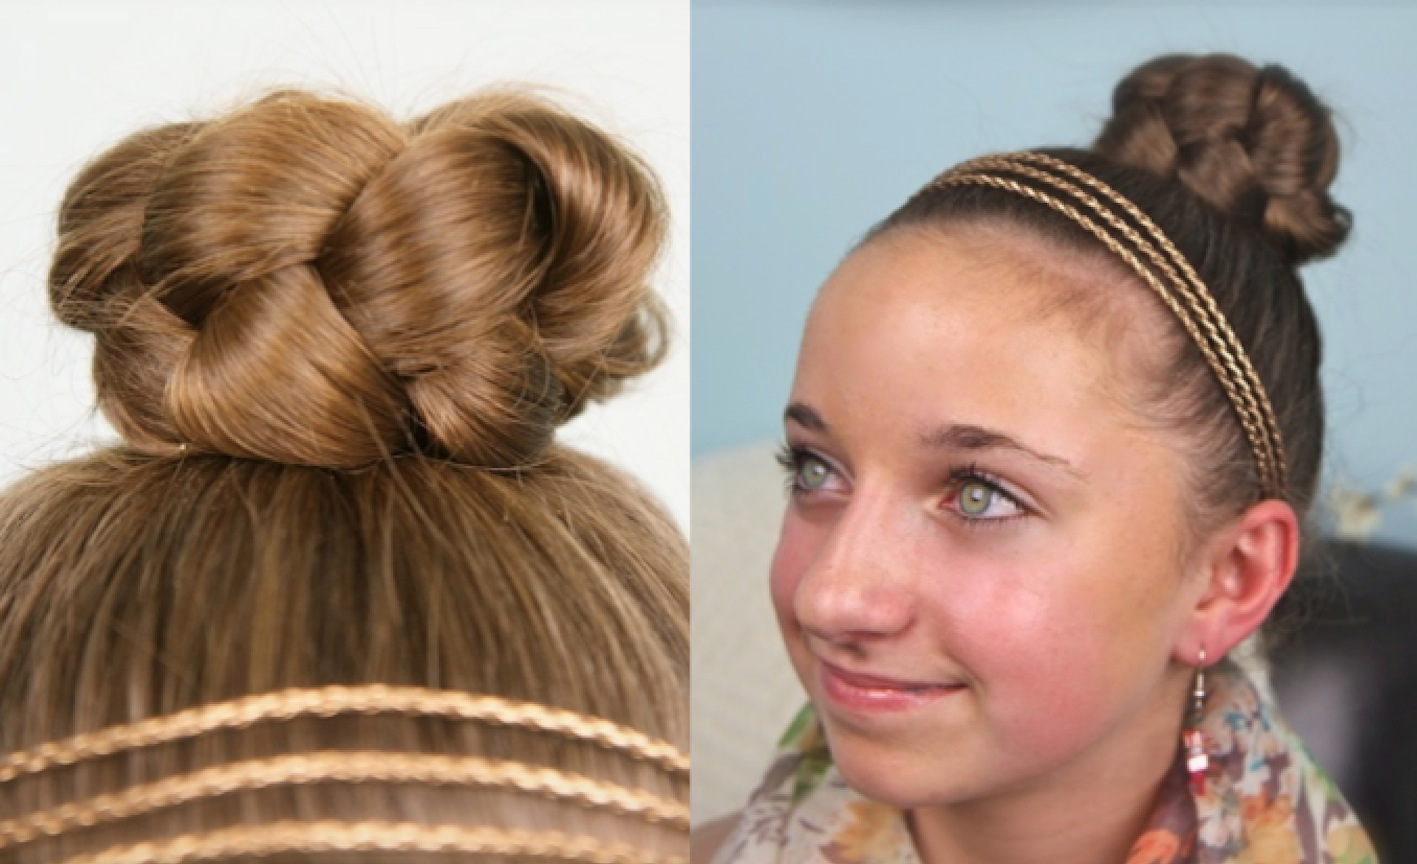 This simple braided bun is a cute, quick style designed for young ...